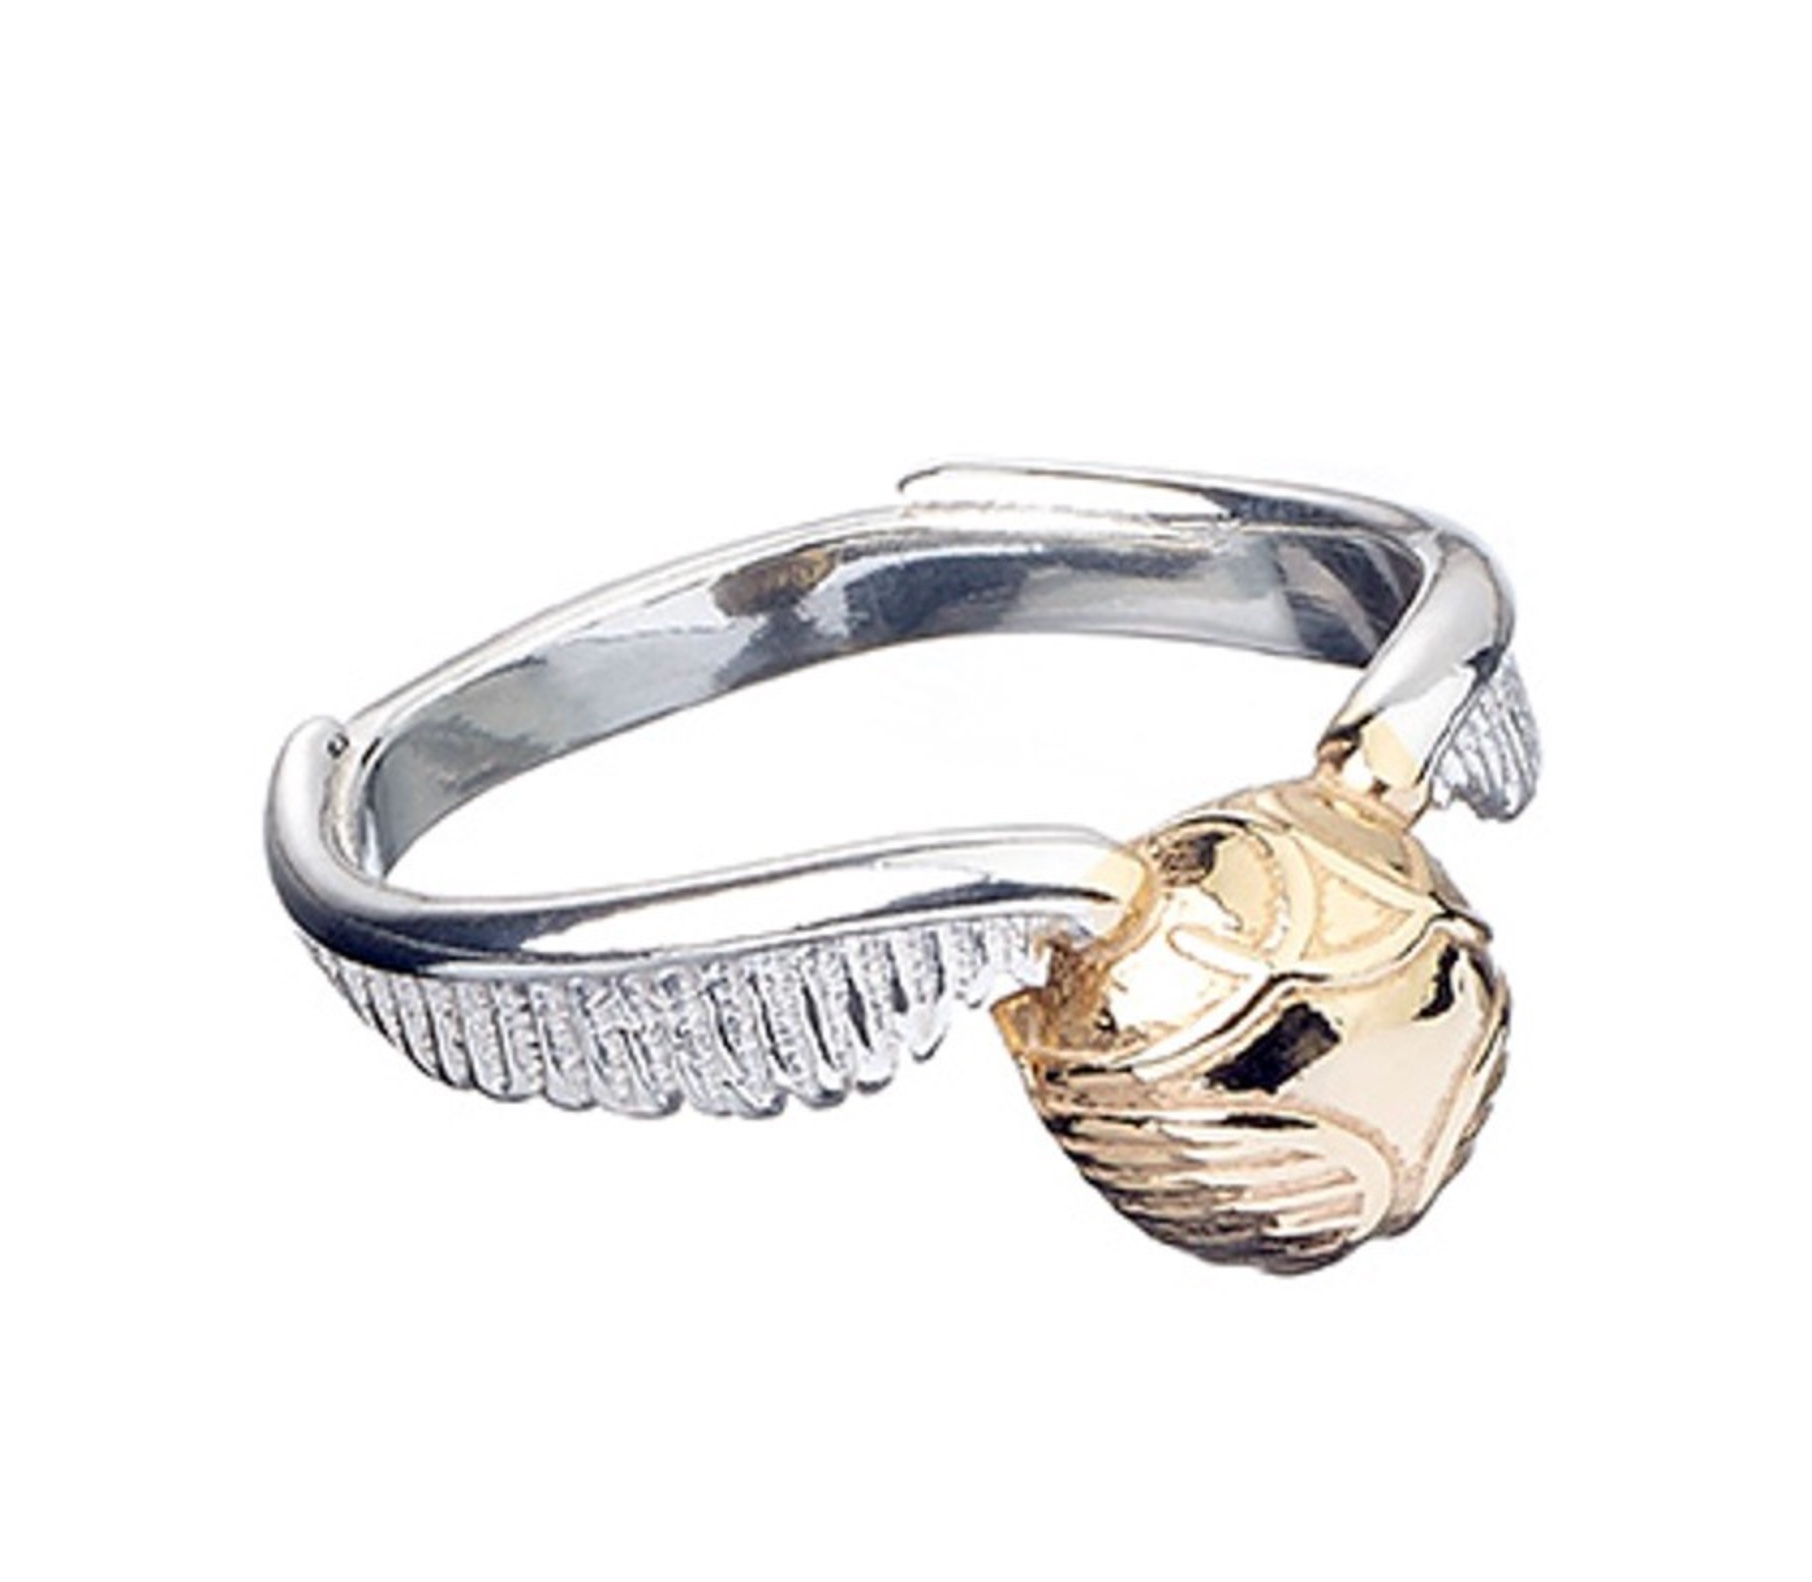 Shopforgeek Harry Potter Bague Sterling Argent Golden Snitch Medium 5055583406058 Harry Potter Bijoux 69 99